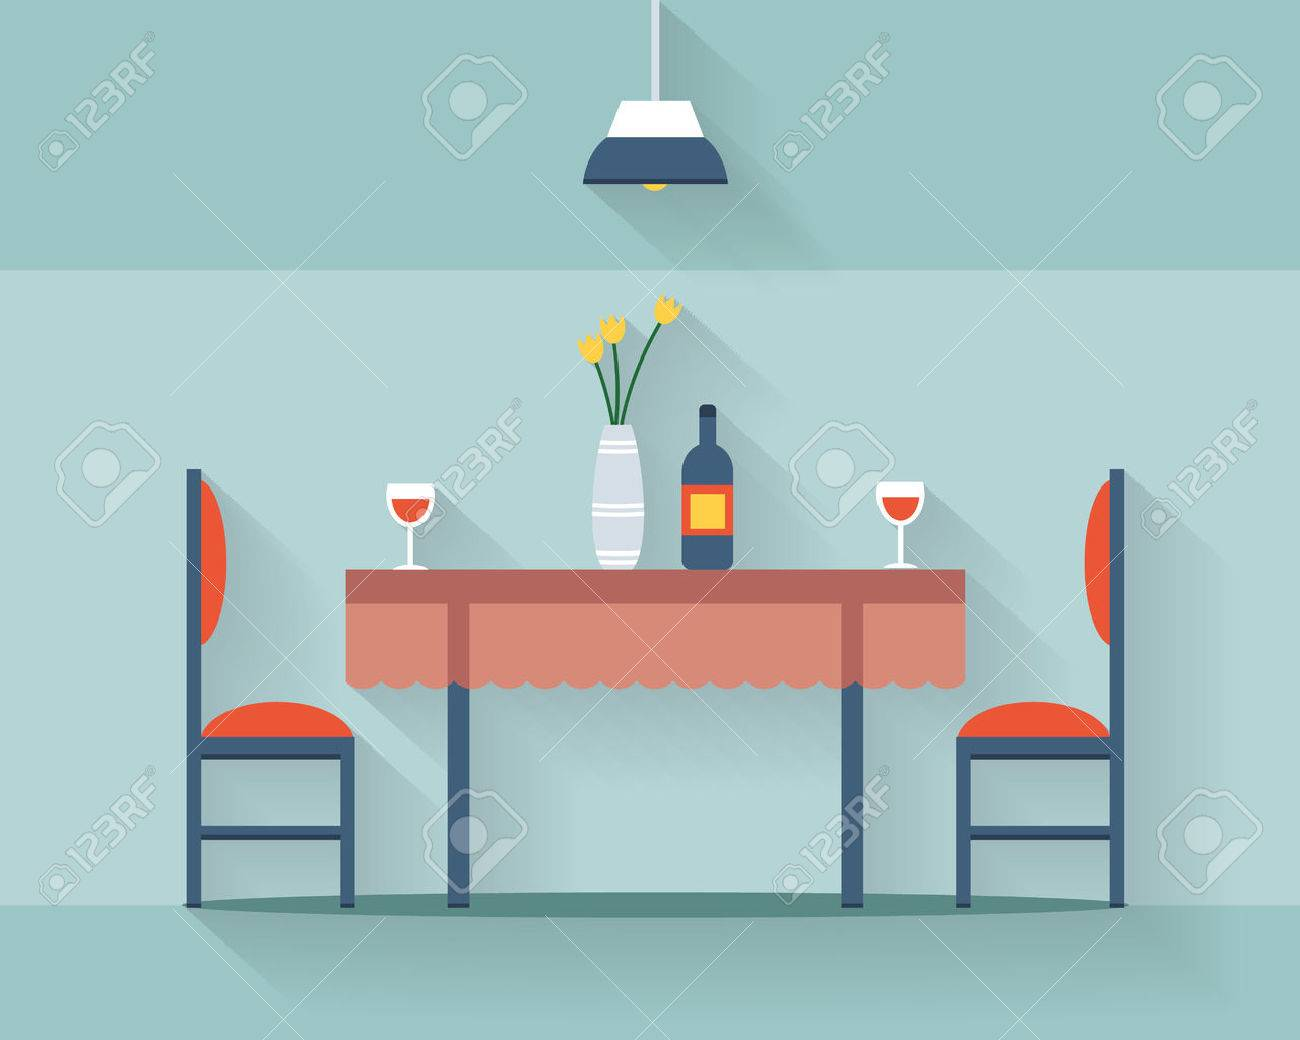 Dining table for date with glasses of wine, flowers and chairs. Flat style vector illustration. - 41456930